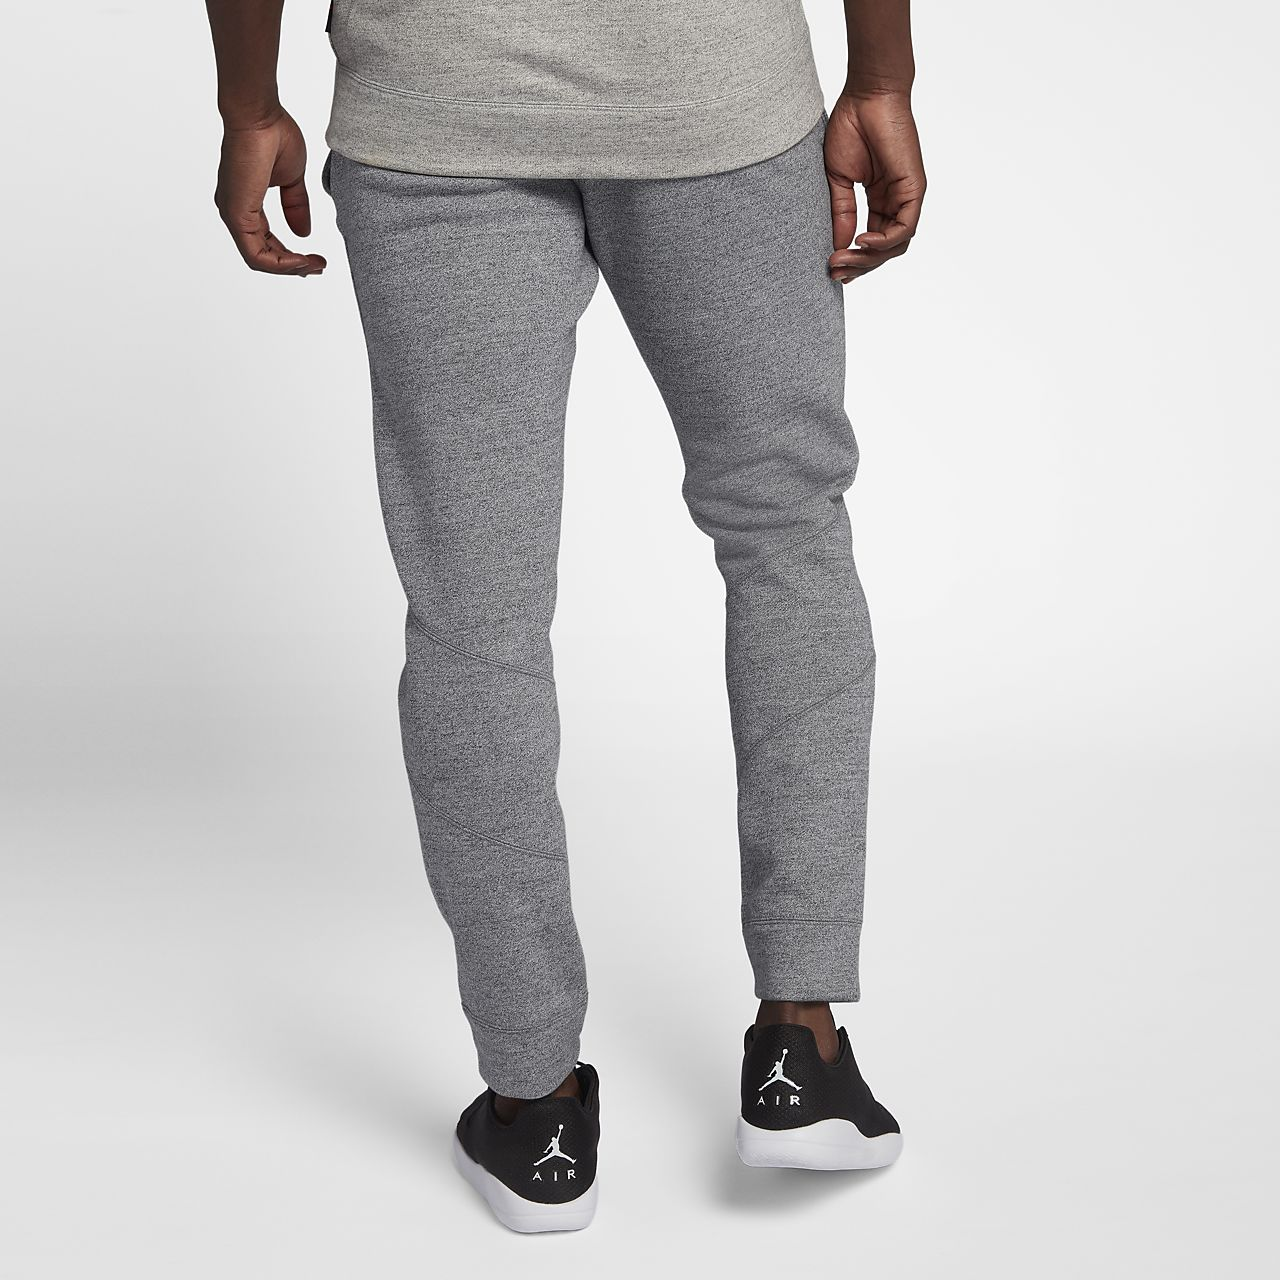 3a3fed07558b Jordan Sportswear Wings Men s Fleece Pants. Nike.com